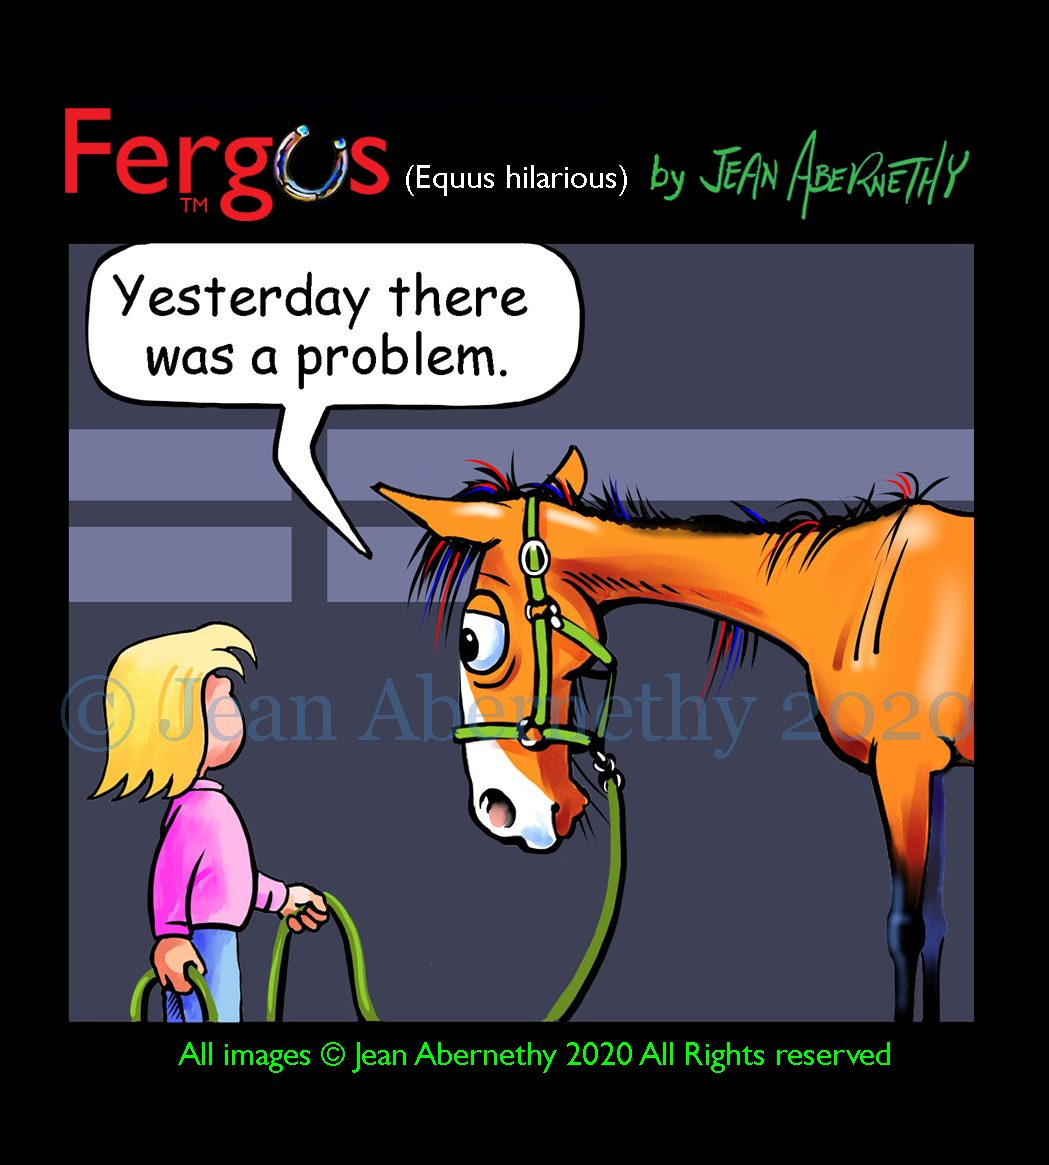 Fergus the Horse by Jean Abernethy